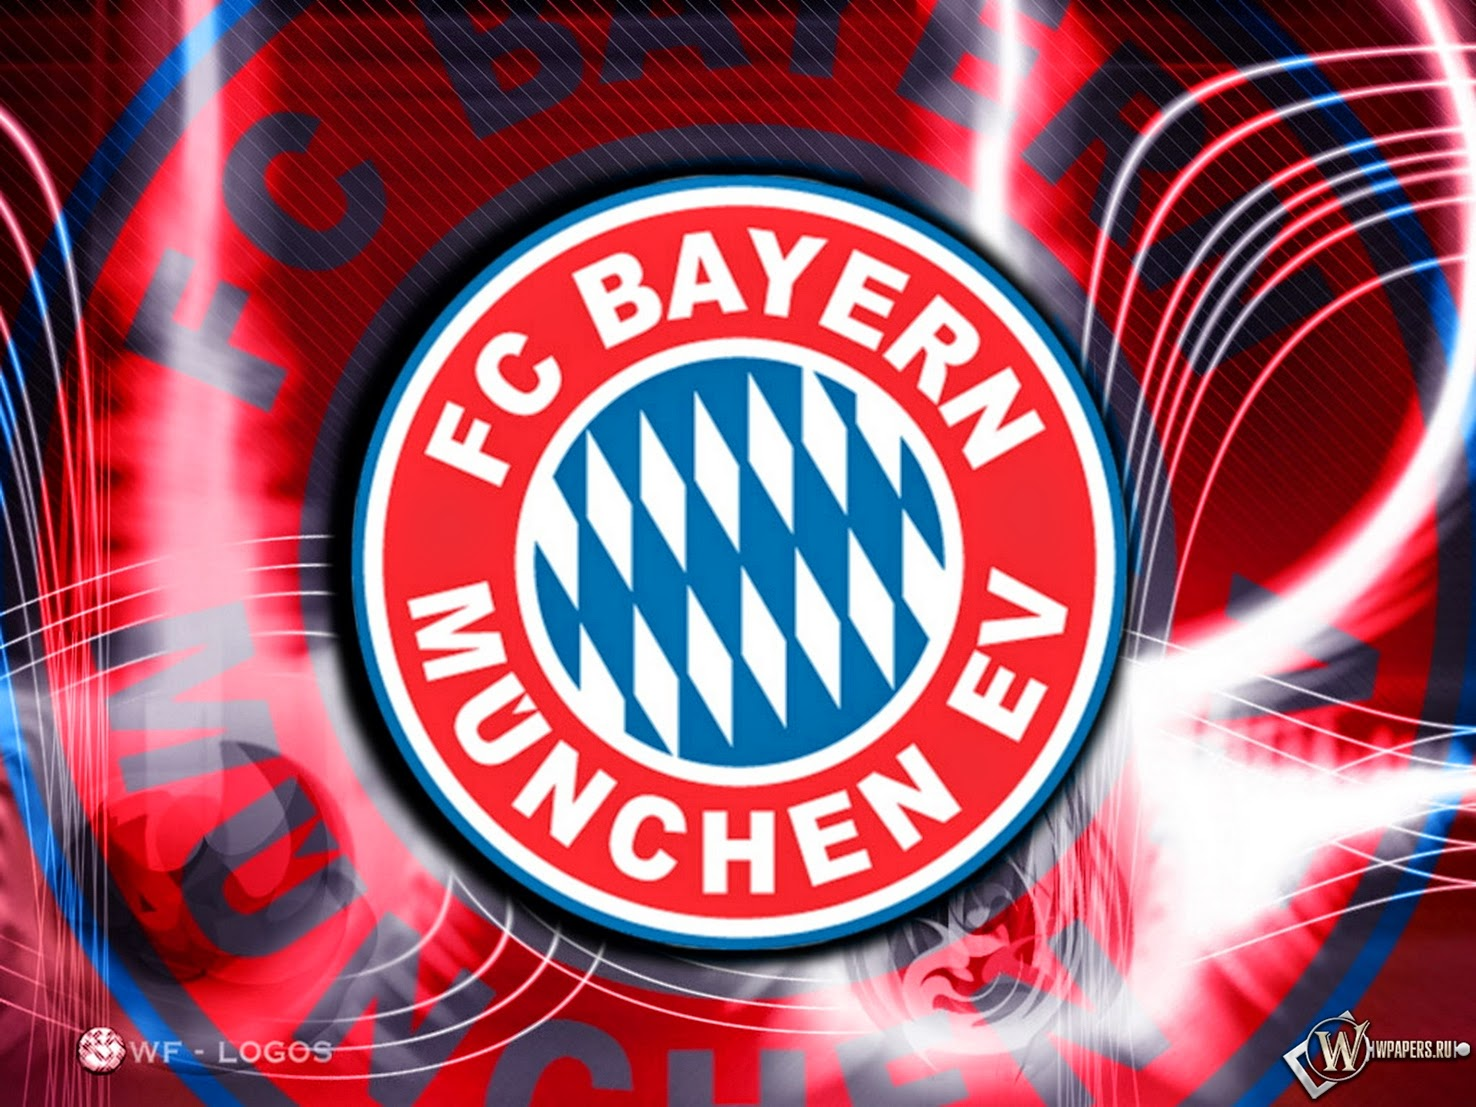 bayern munchen football club wallpaper football wallpaper hd. Black Bedroom Furniture Sets. Home Design Ideas